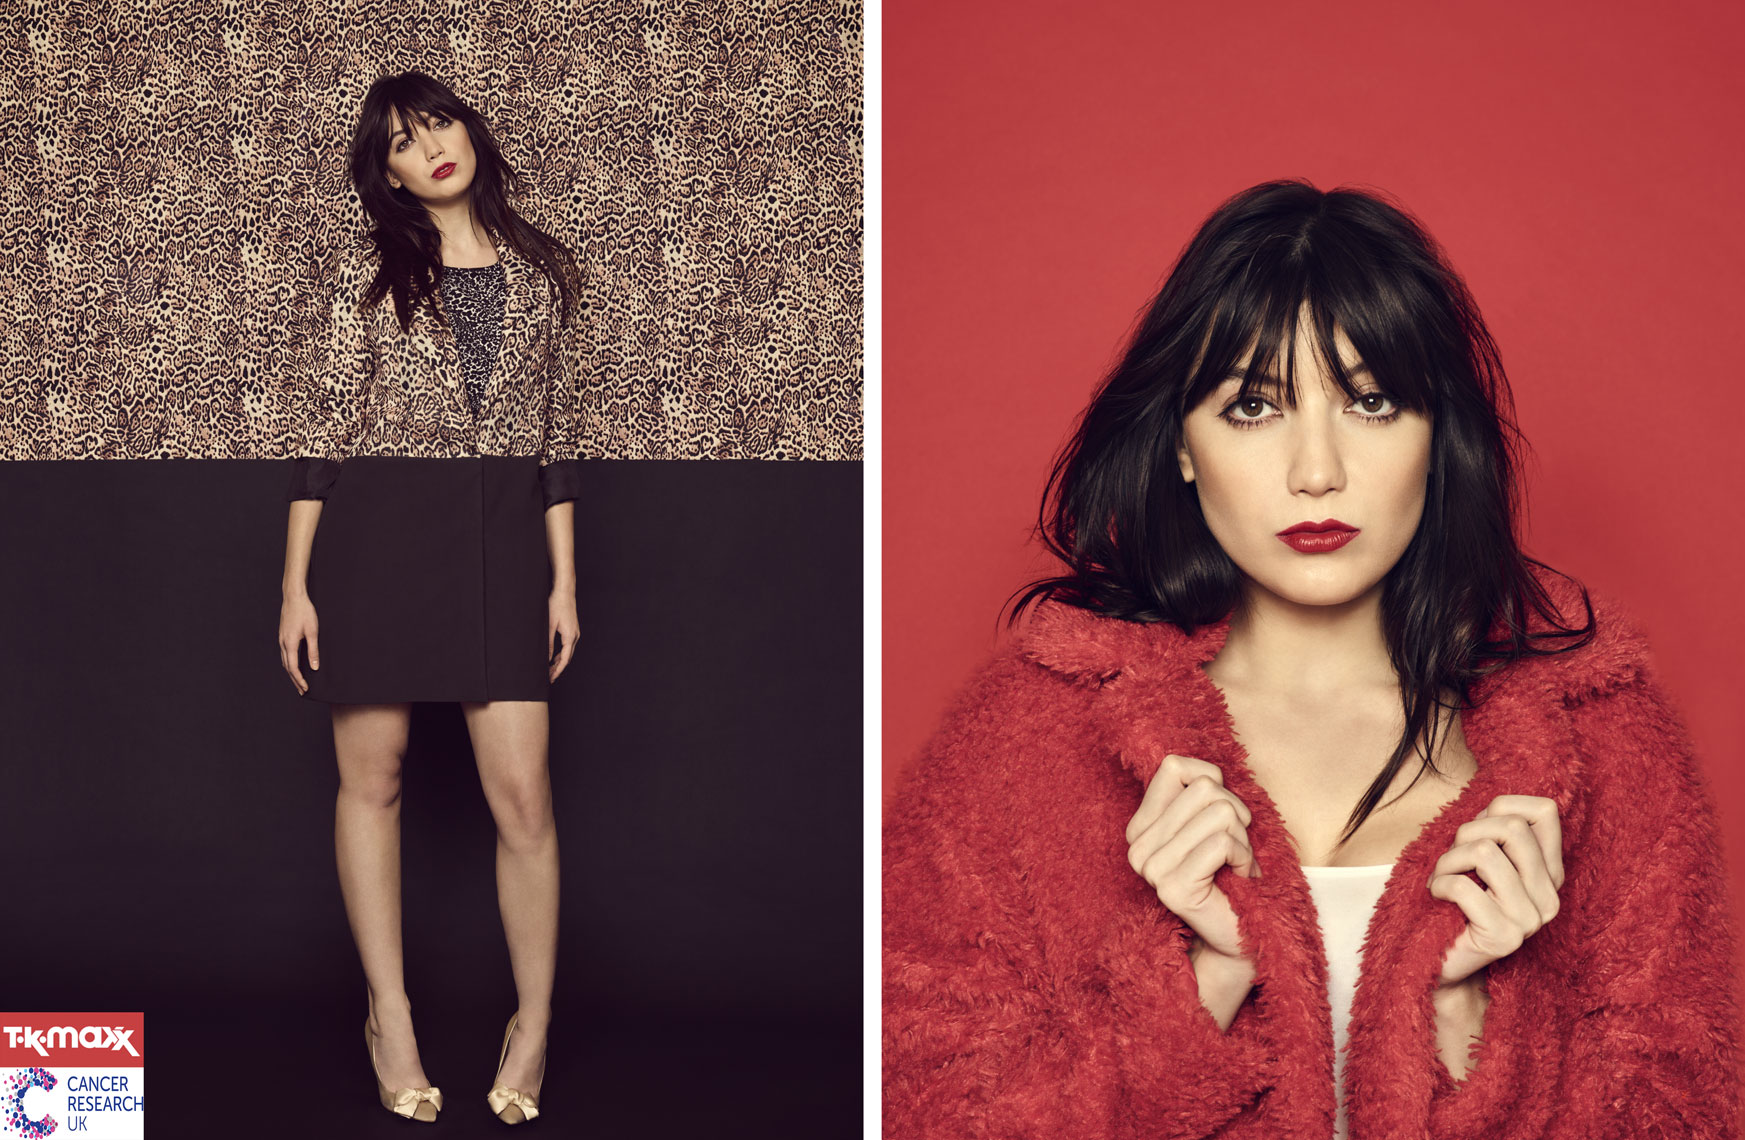 issie-gibbons-fashion-stylist-jason-bell-tk-maxx-cancer-research-campaign-daisy-lowe-celebrity